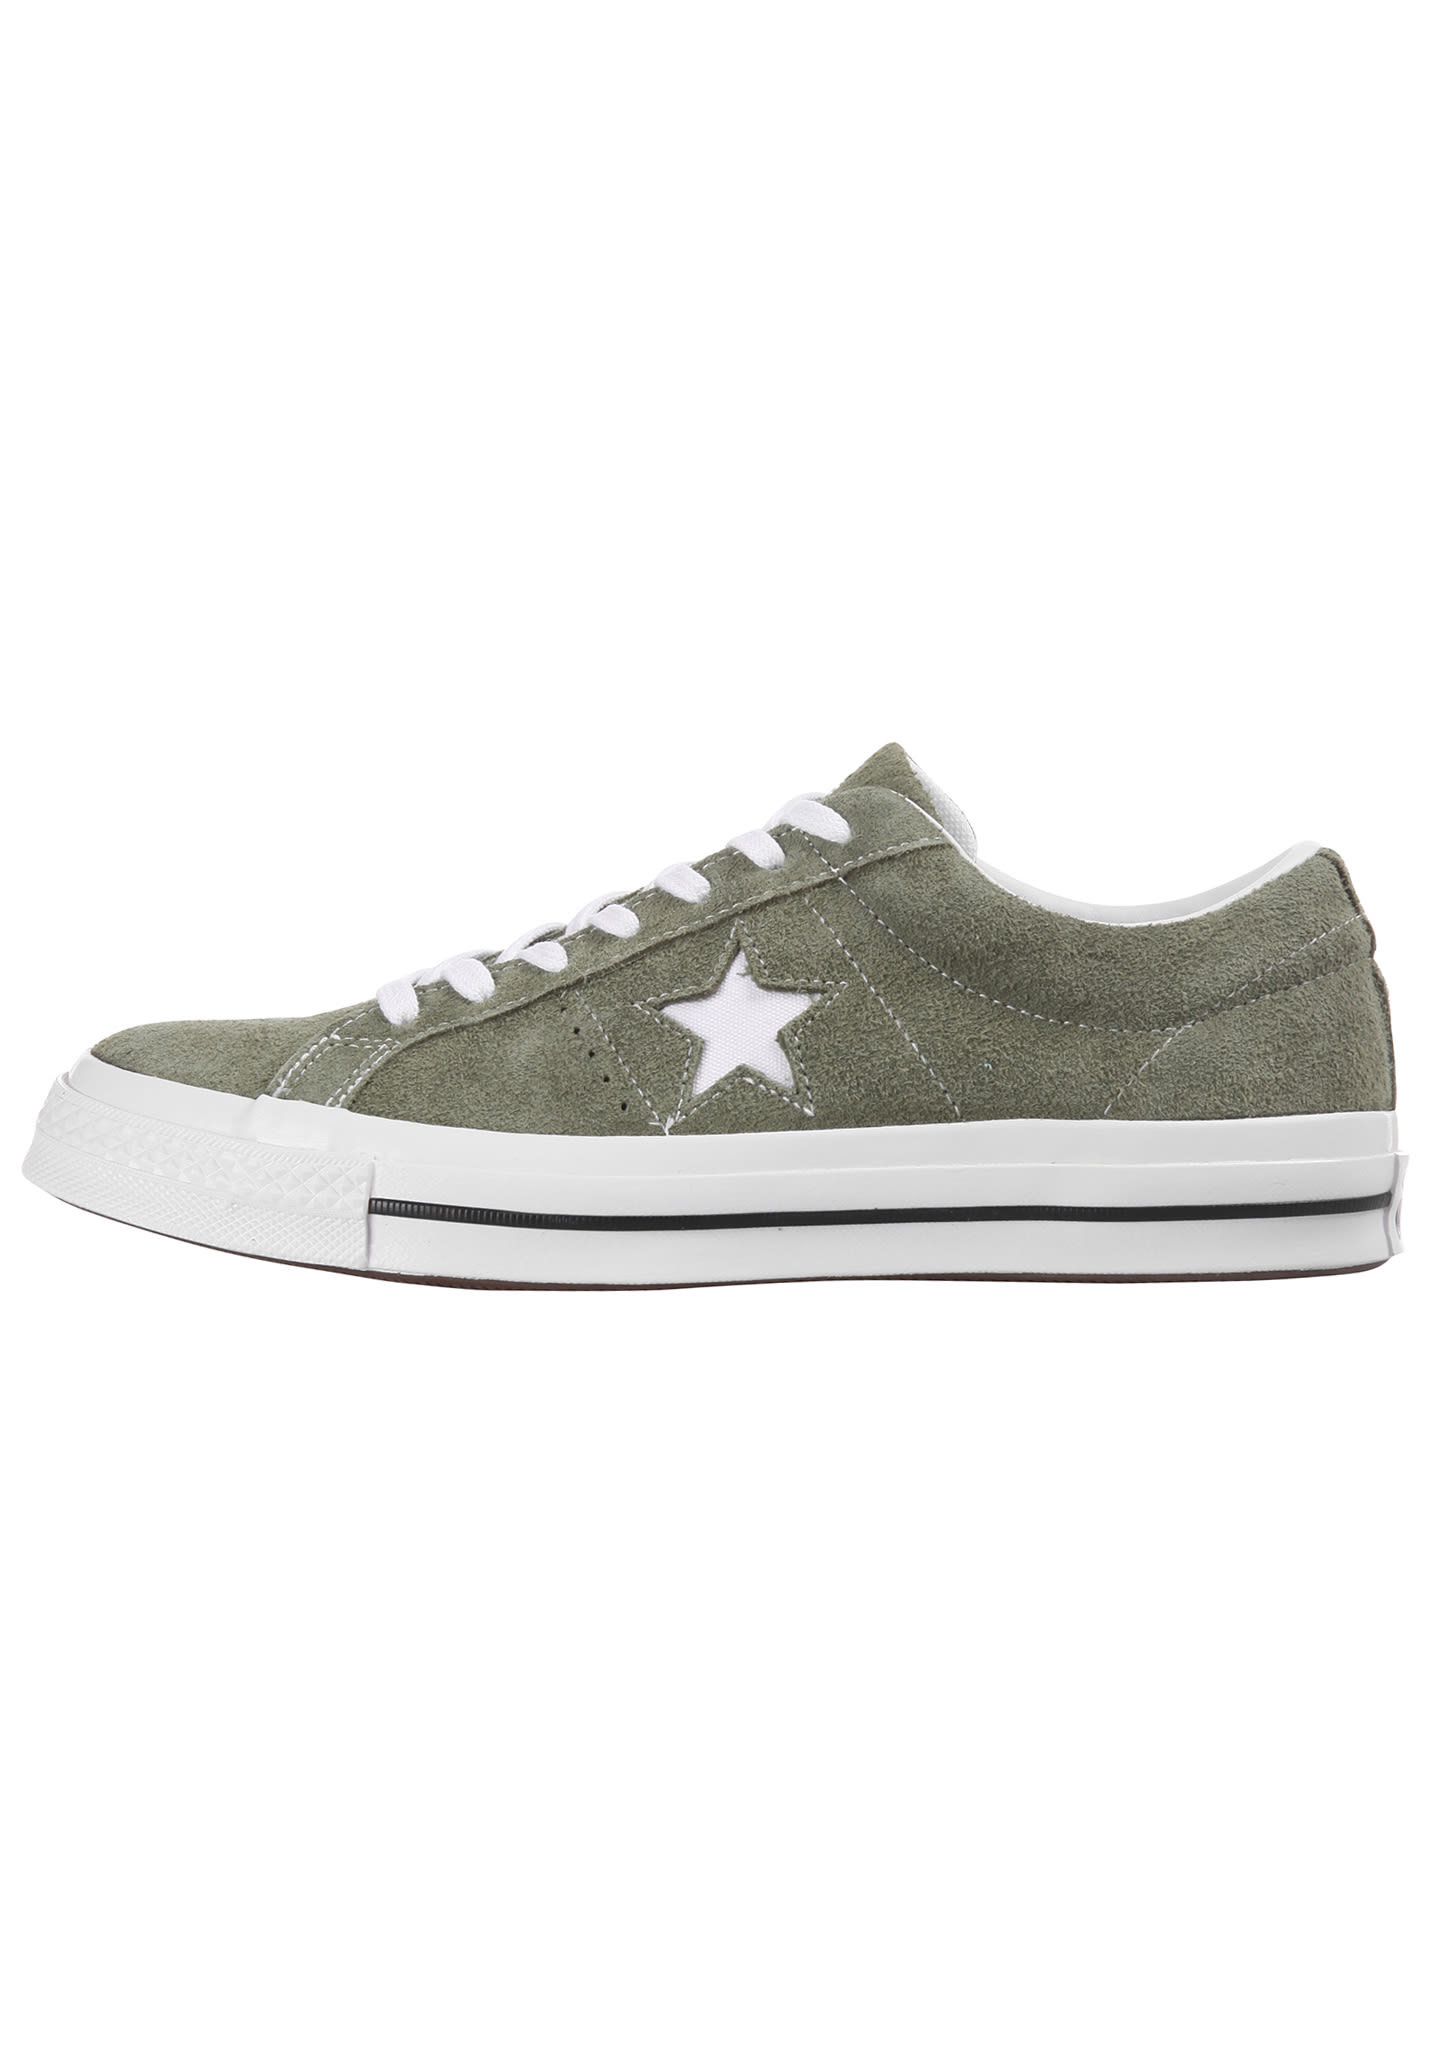 Converse One Star Ox Field - Sneakers for Men - Green - Planet Sports ef4f69ded